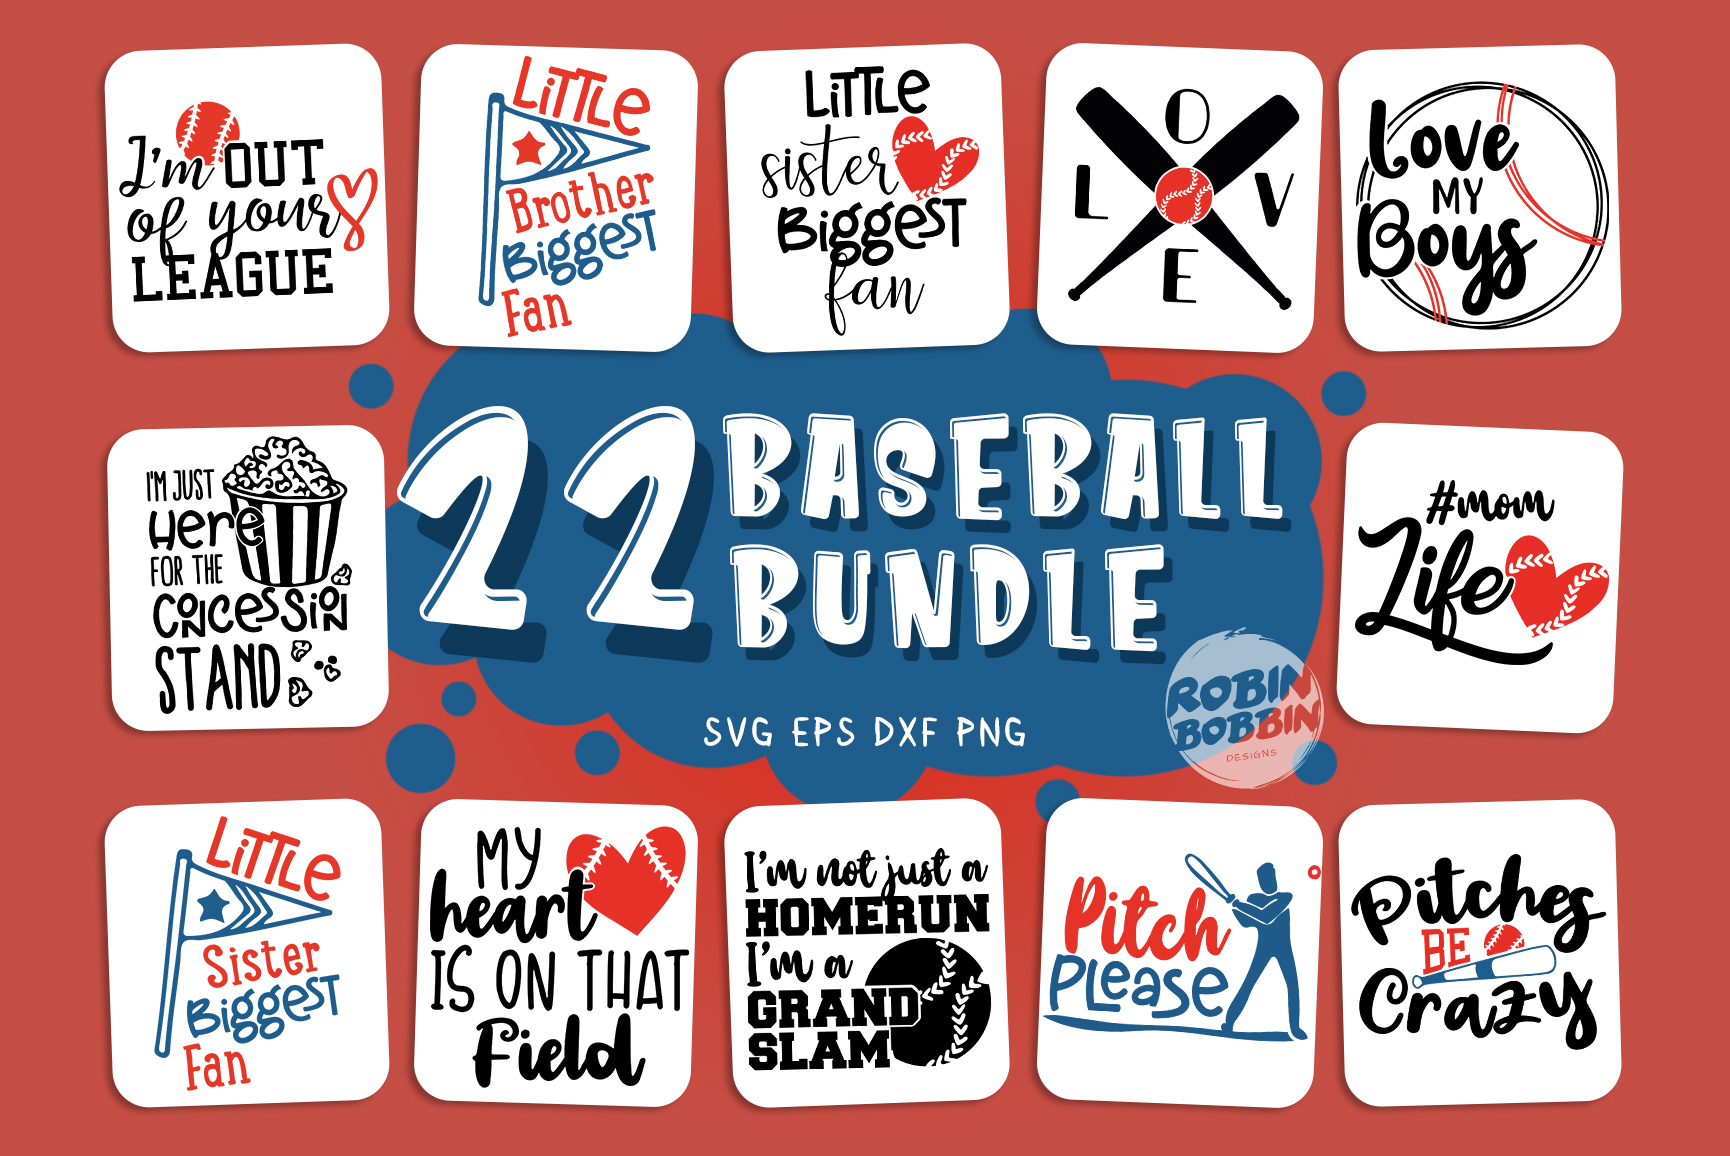 Mega SVG Bundle - Cut Files Bundle - Mega Bundle Over 700 example image 3